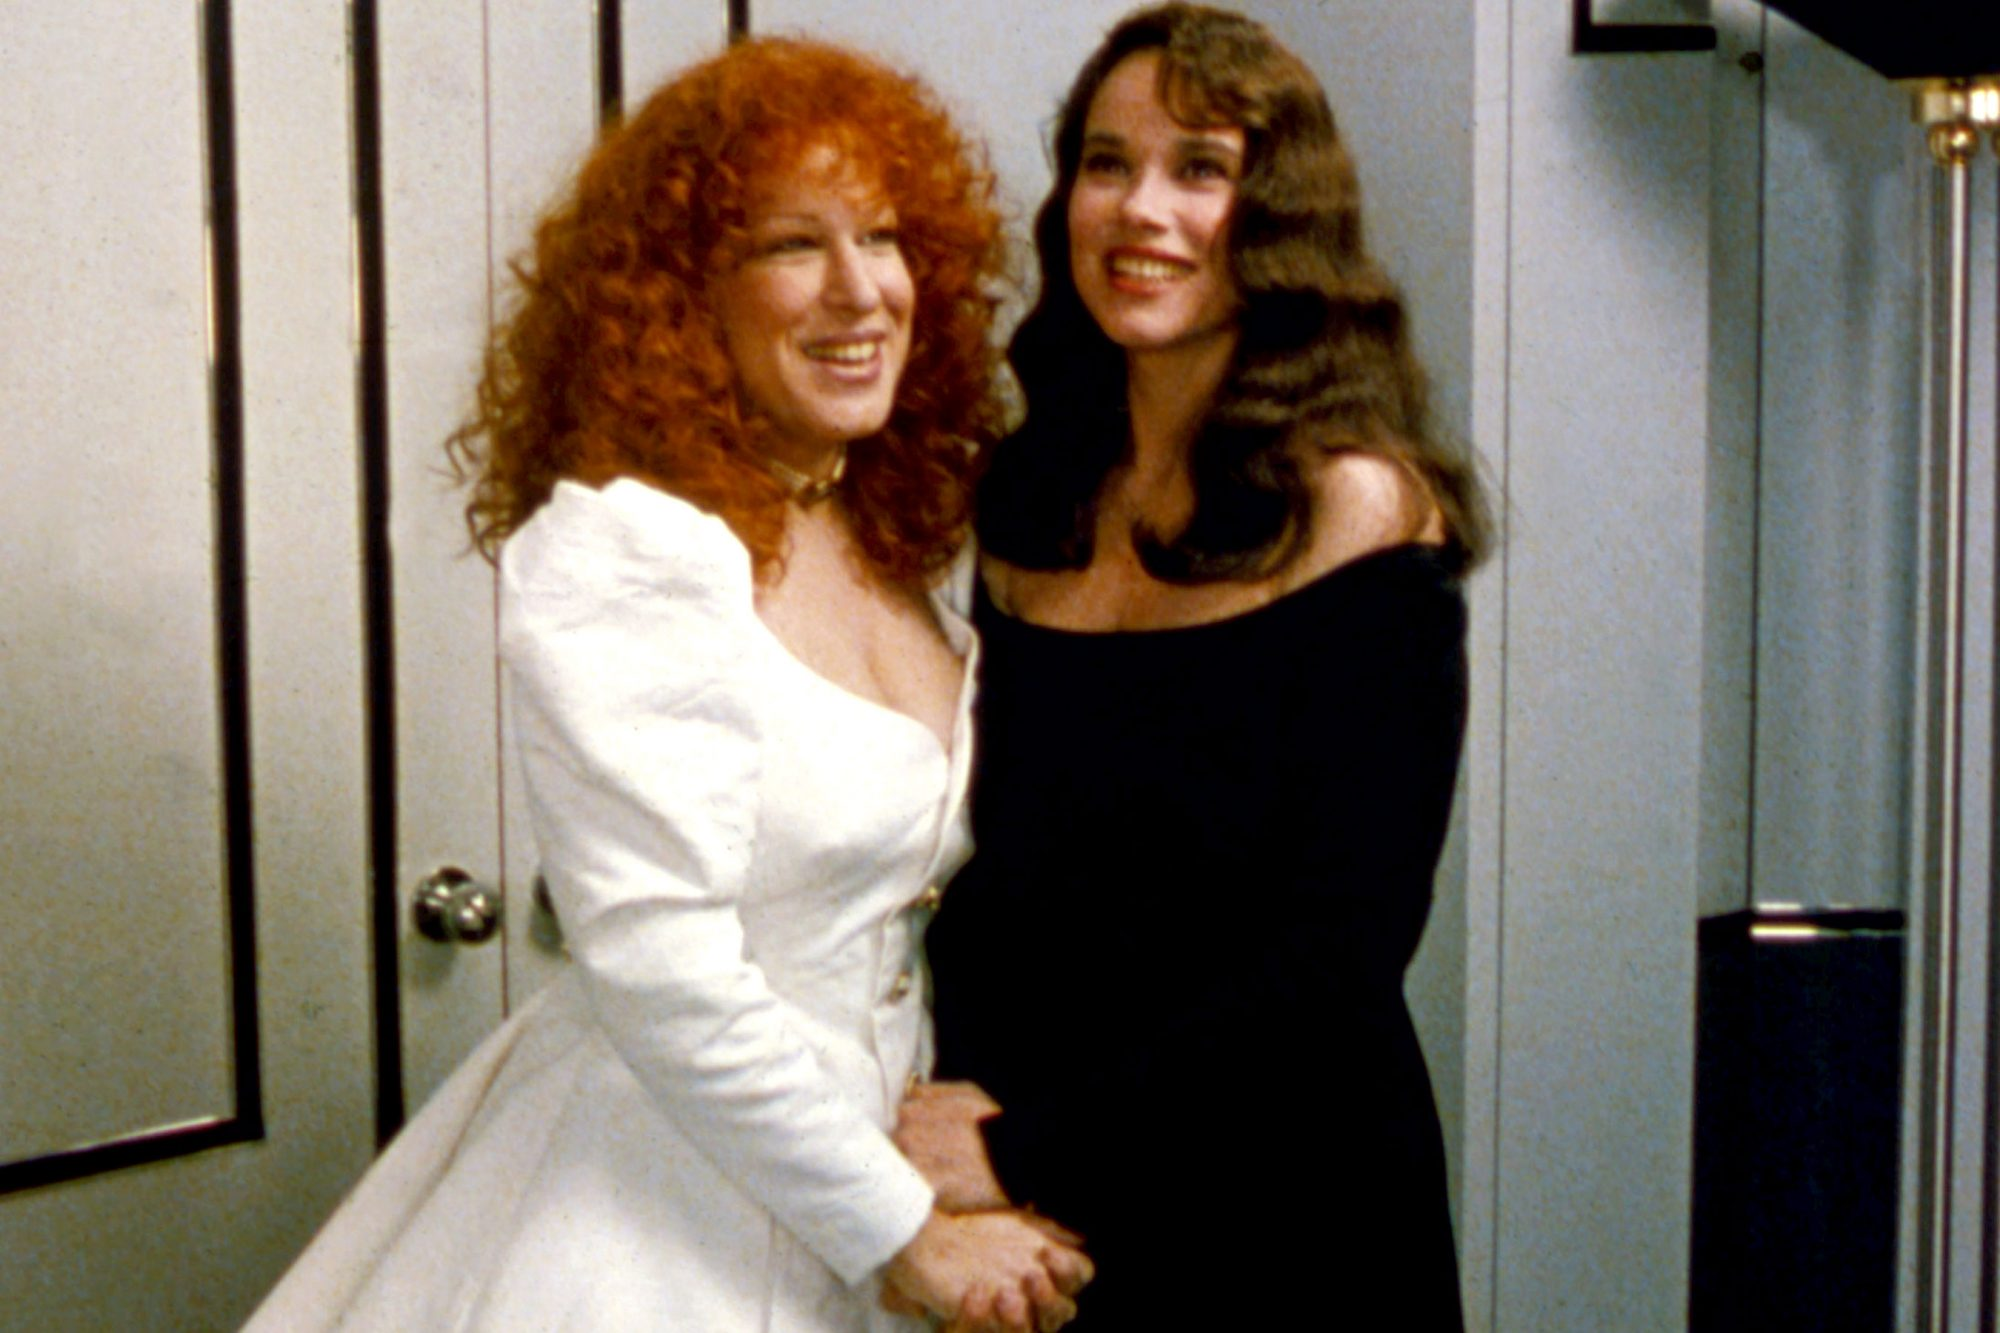 BEACHES, Bette Midler, Barbara Hershey, 1988. © Buena Vista Pictures / courtesy Everett Collection